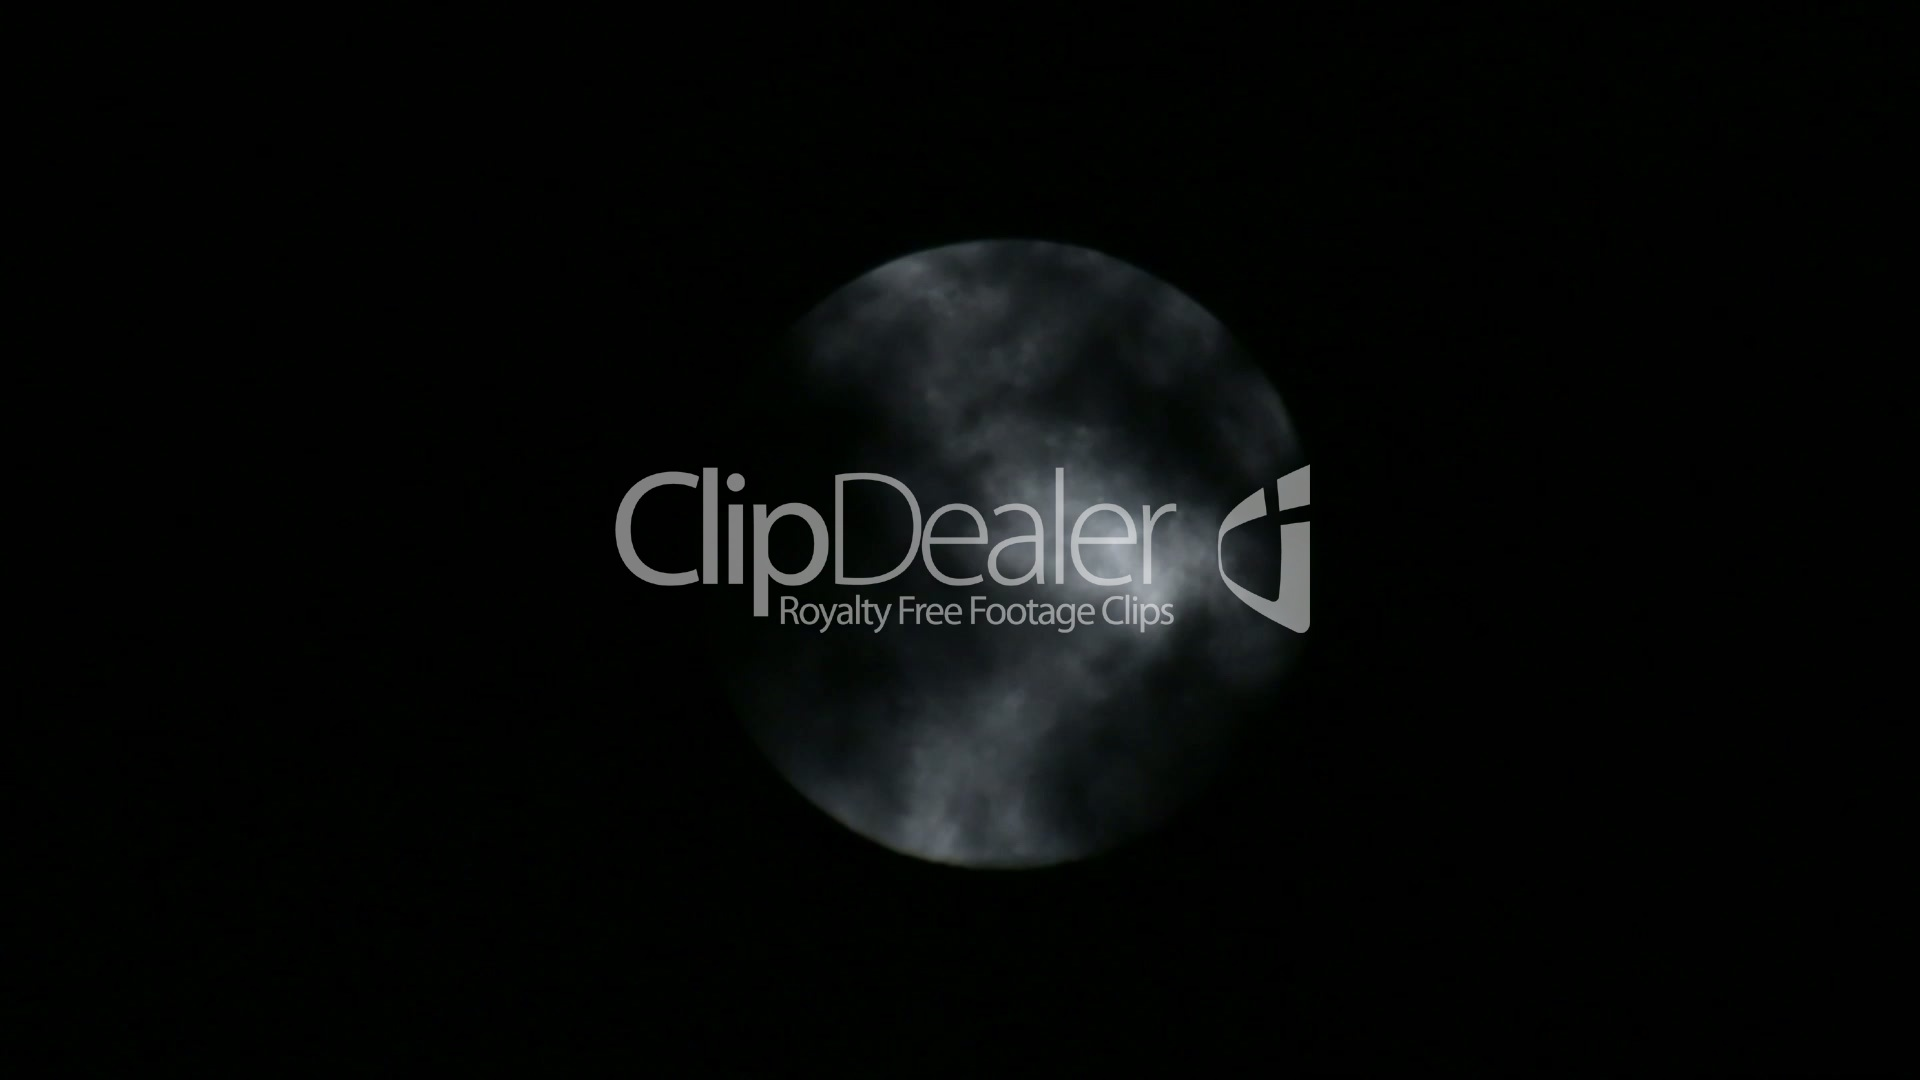 Scary Full Moon and Dark Clouds at Night: Royalty-free video